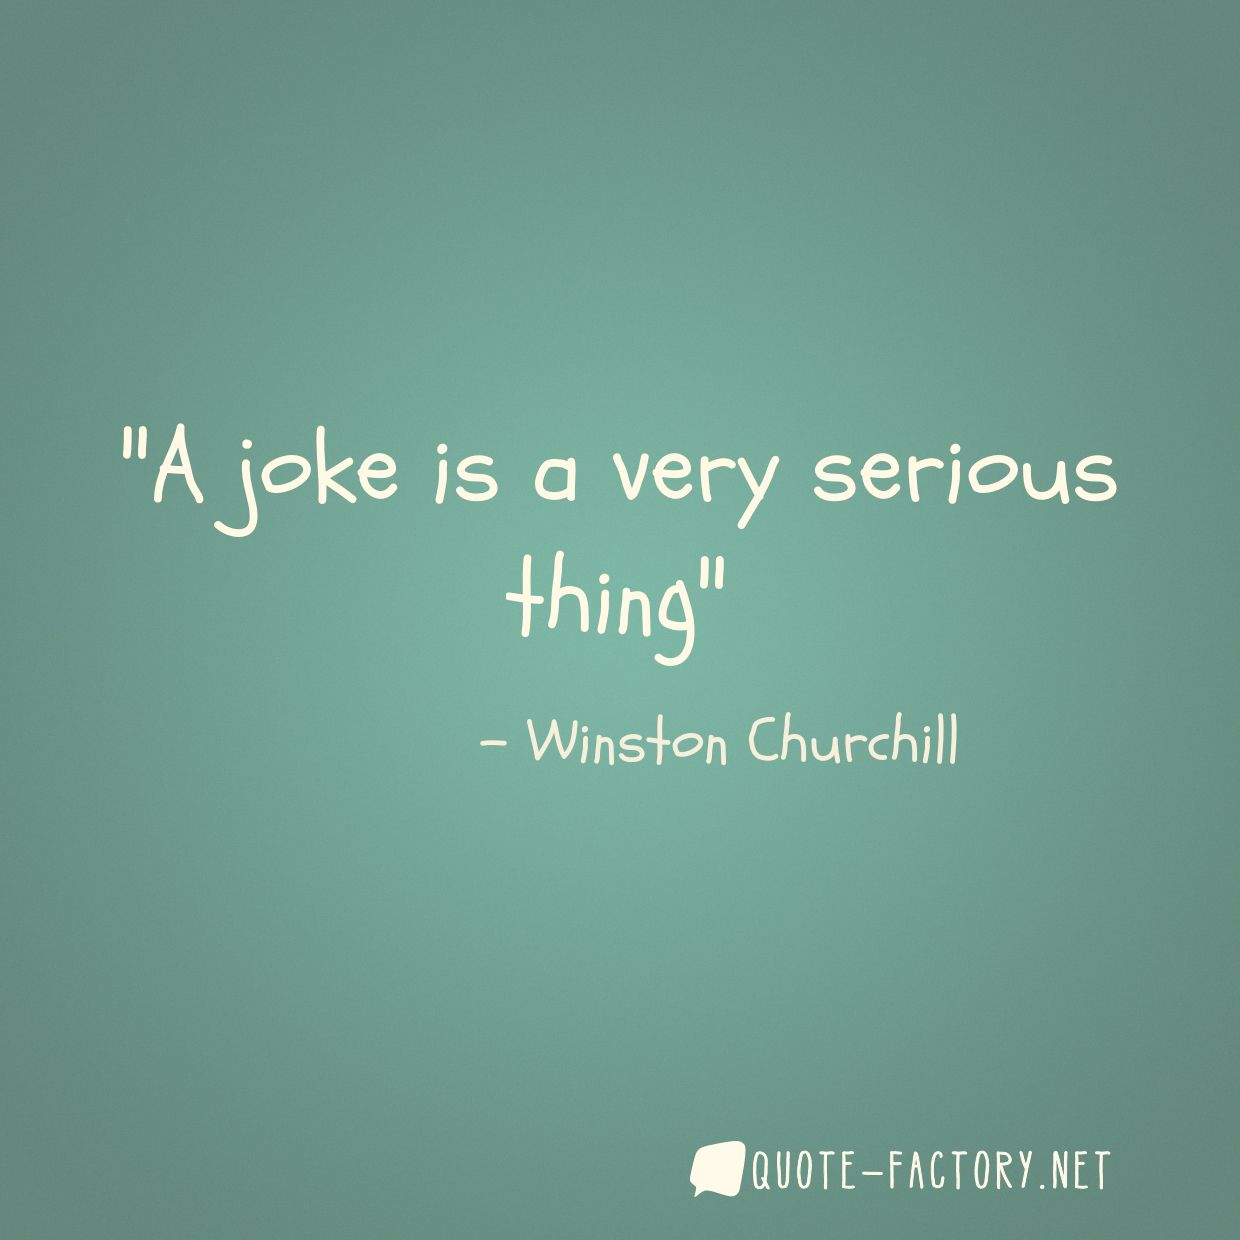 A joke is a very serious thing